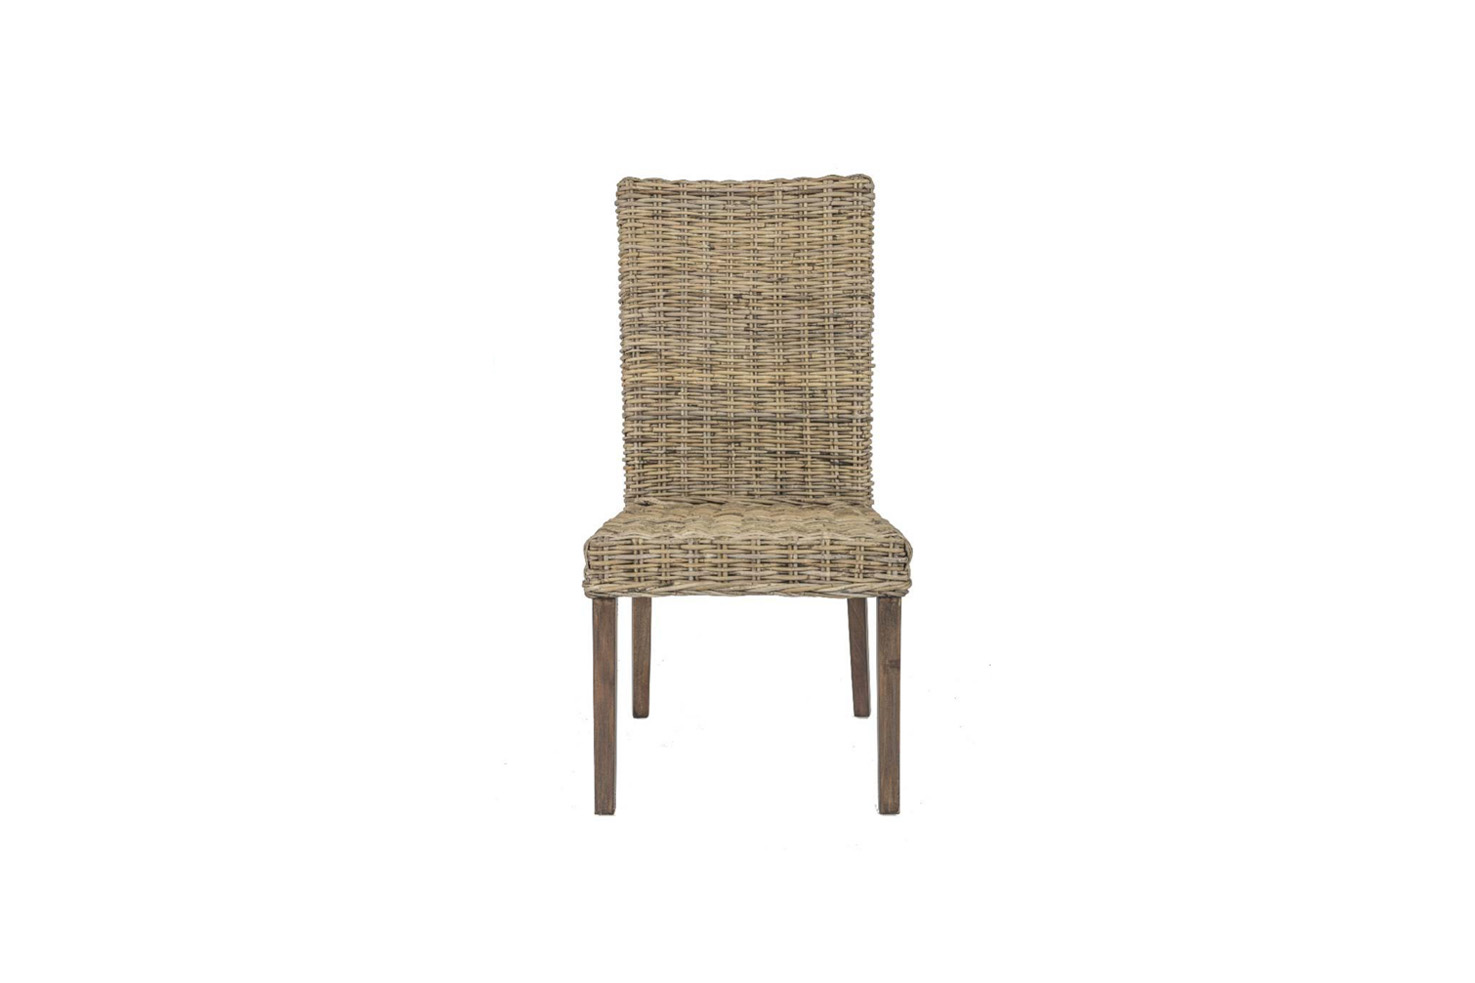 Terrain wicker cane rattan conservatory furniture dining chair for Cane wicker furniture